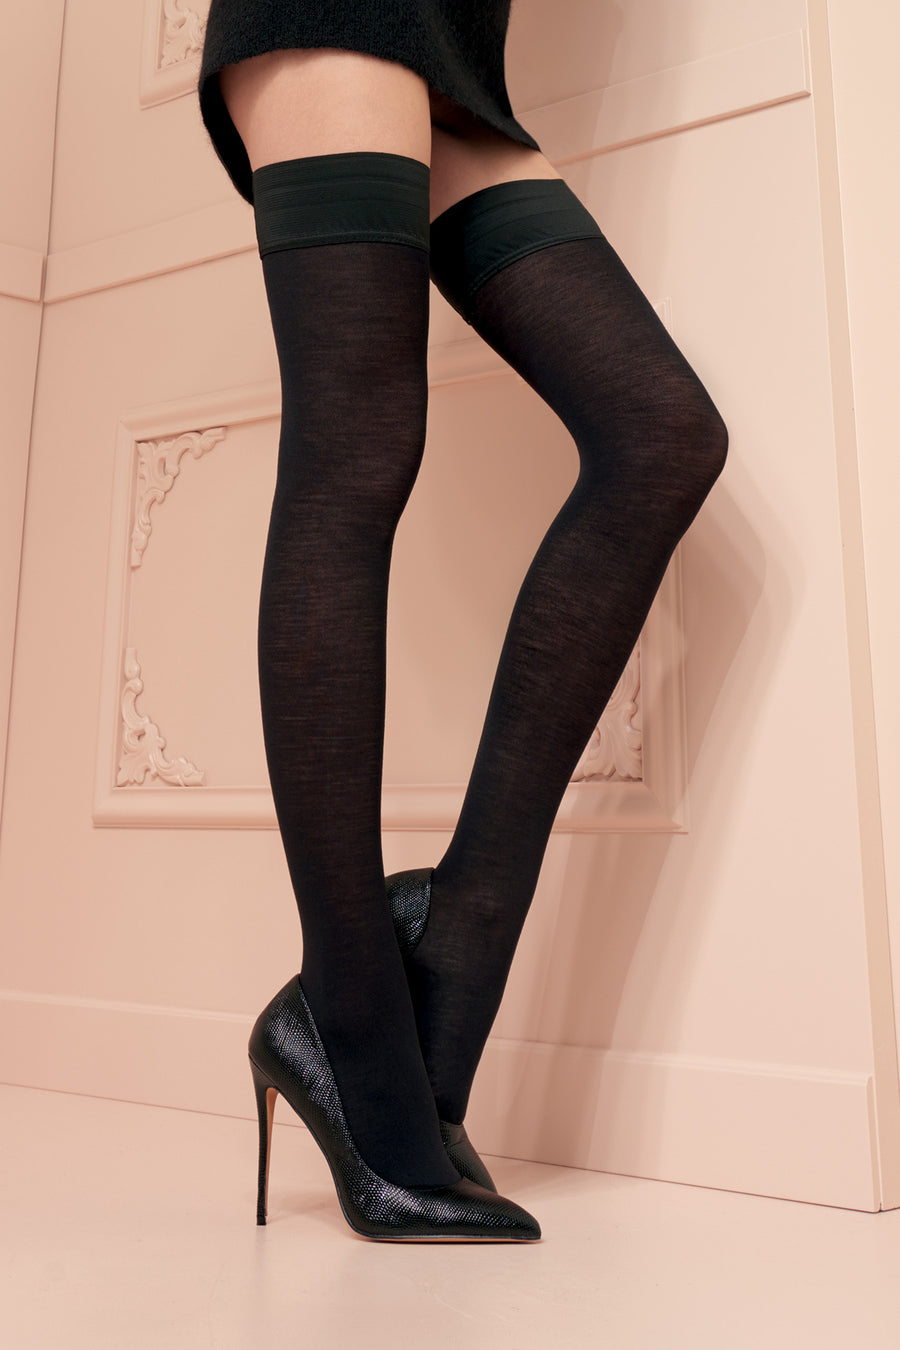 Trasparenze Jennifer Merino Wool Hold Ups - Mayfair Stockings